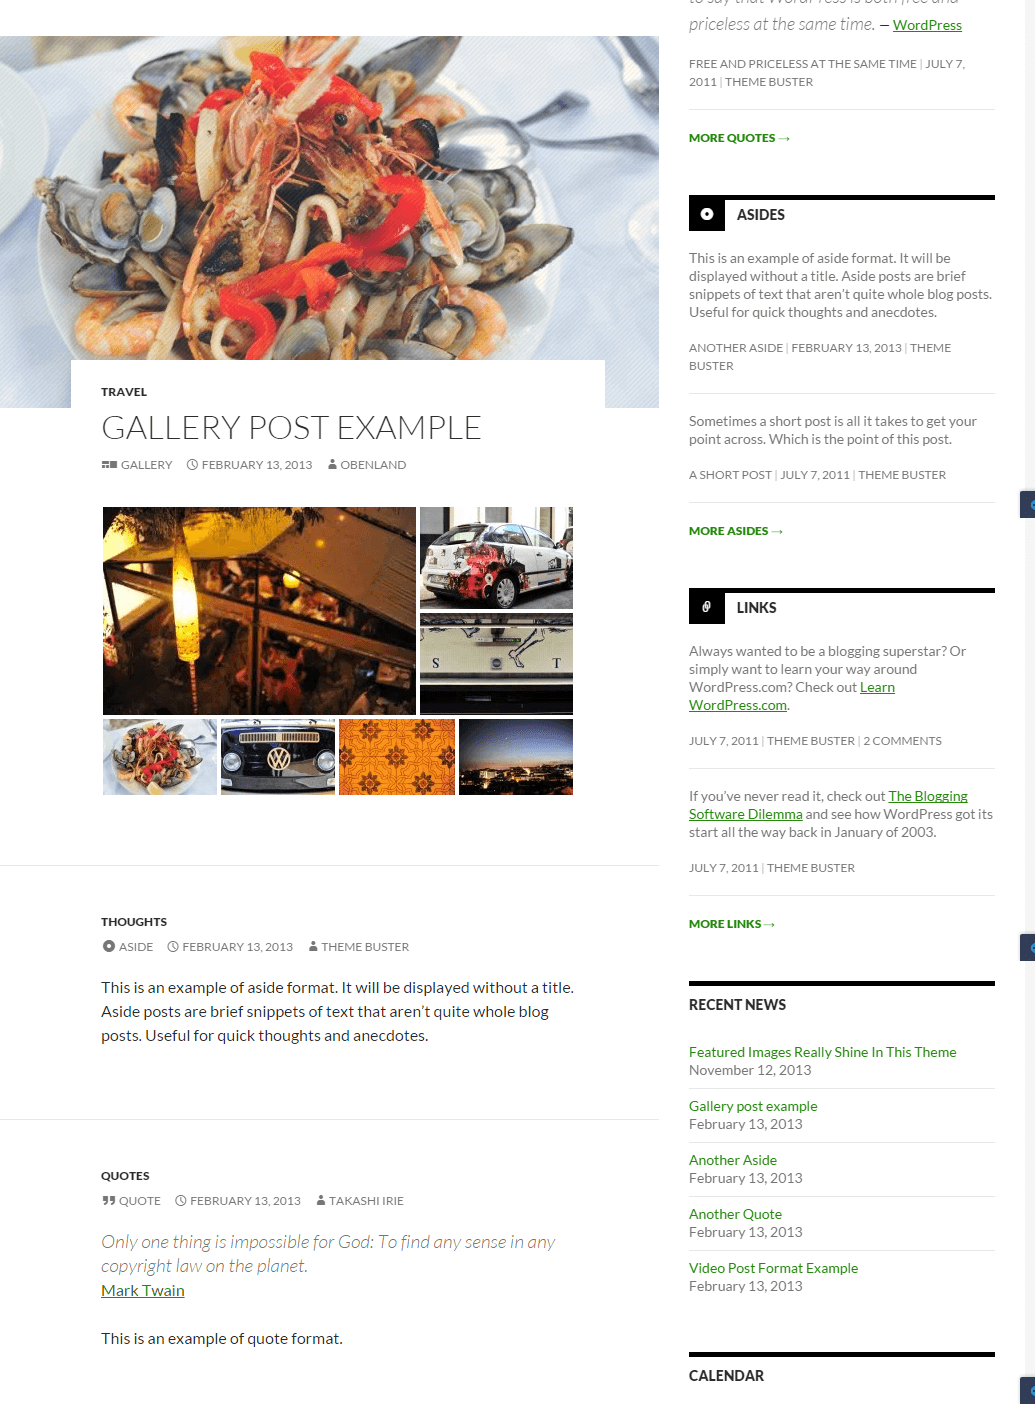 Twenty Fourteen - Gallery and Quotes post format layouts